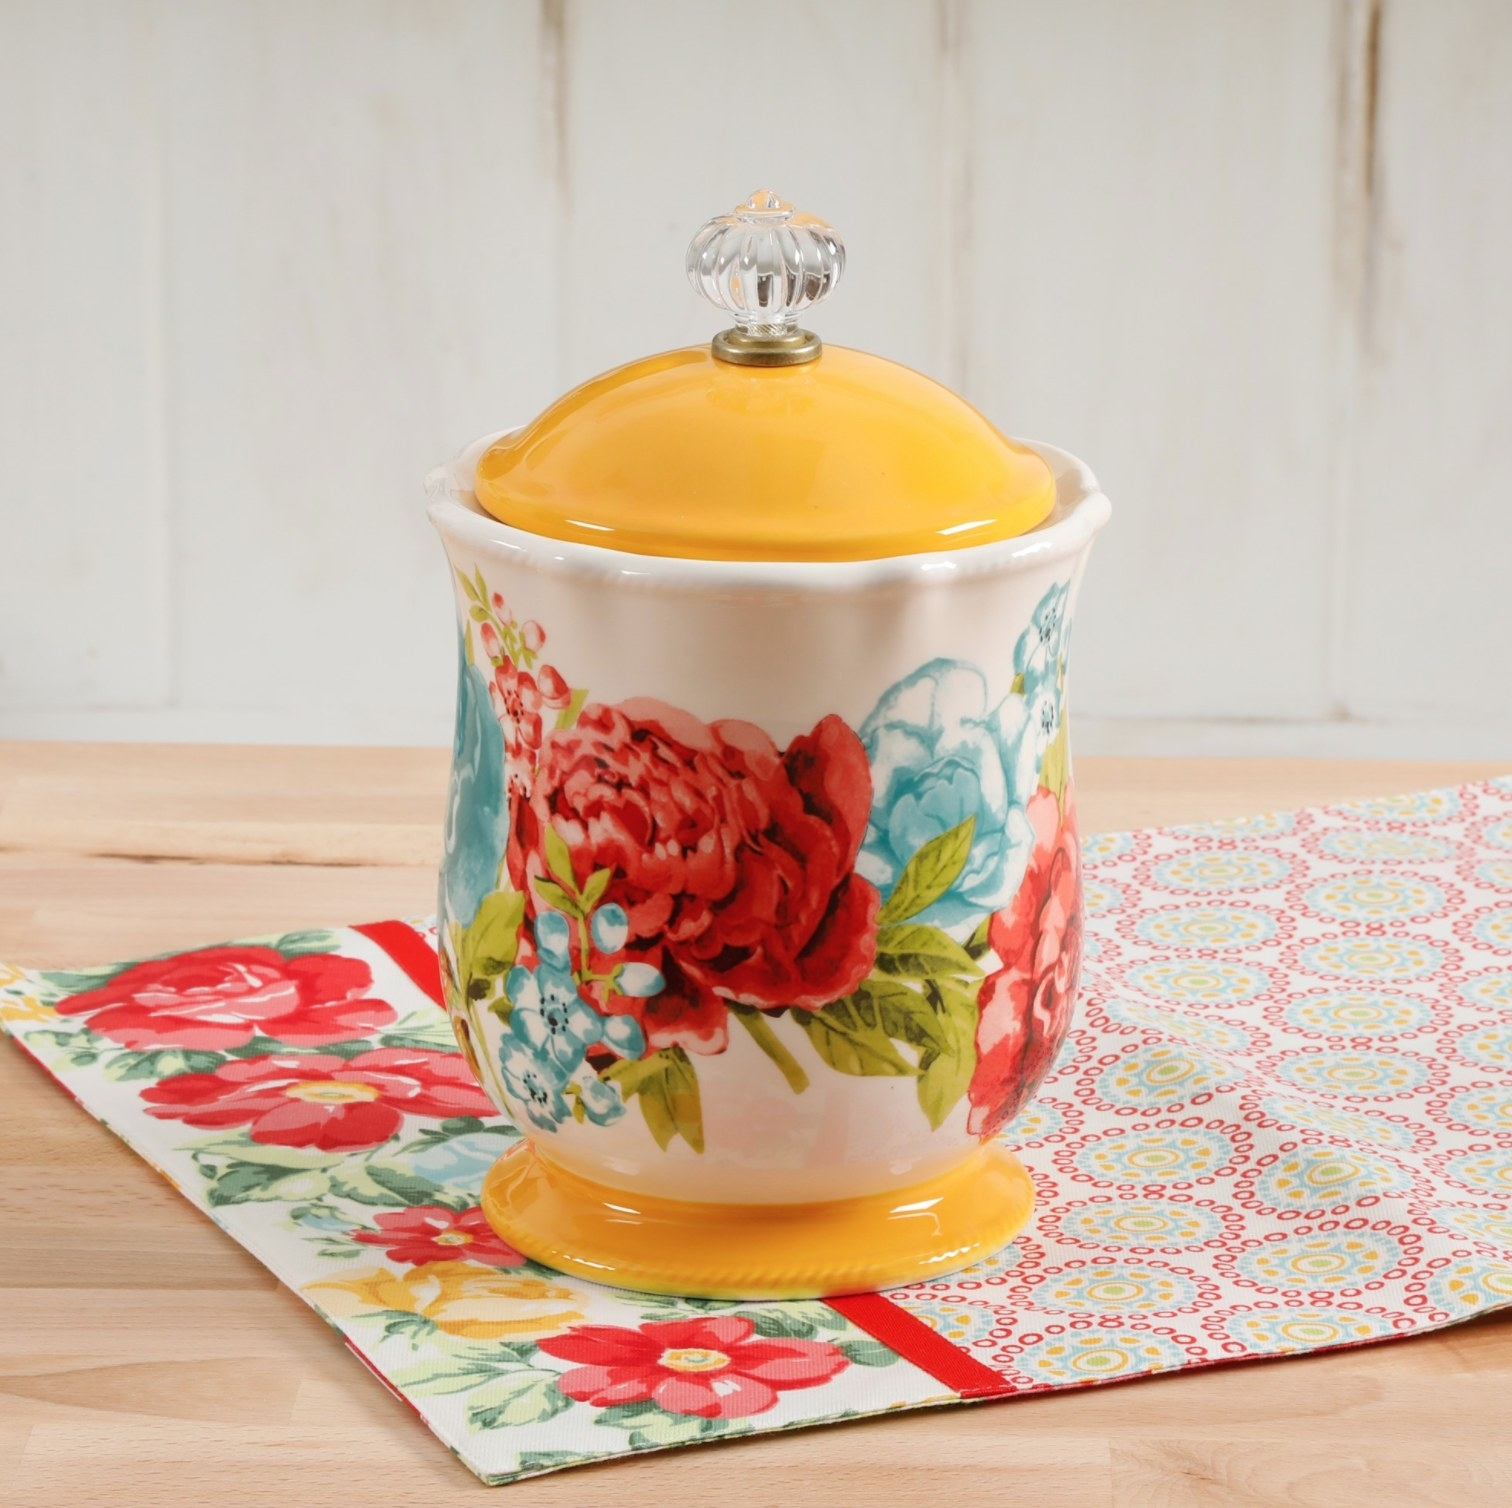 The canister with red and blue flowers and a yellow top